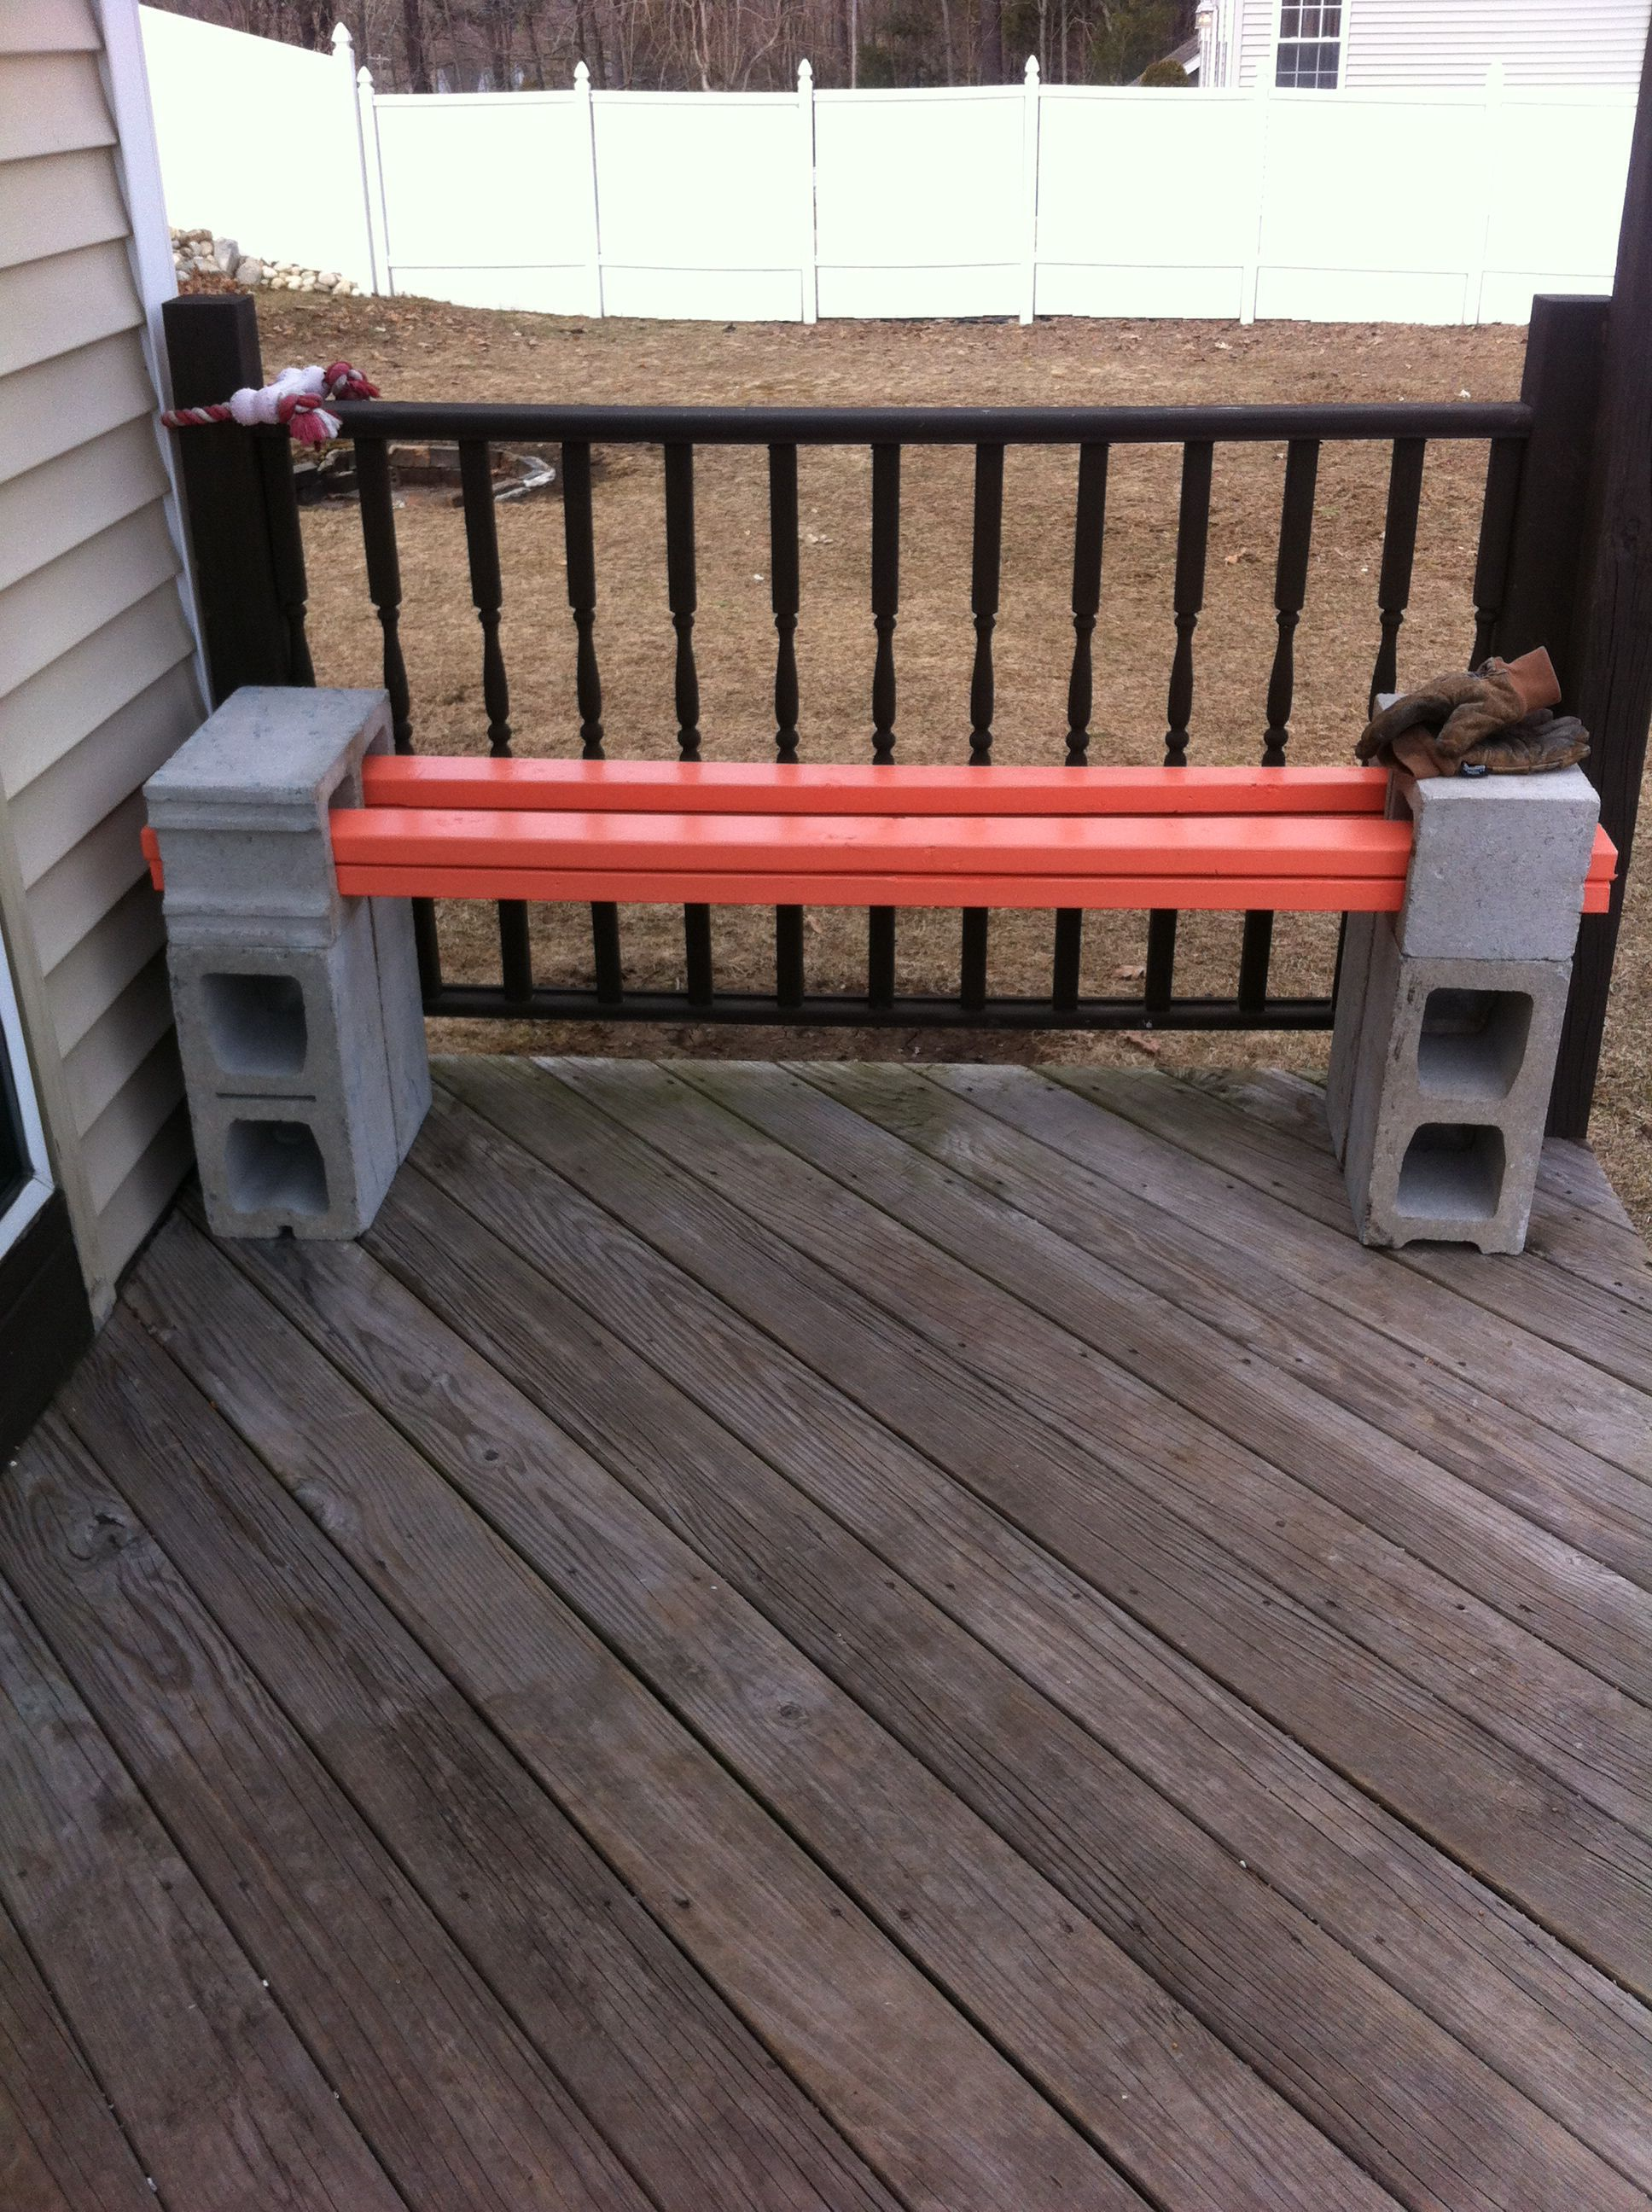 Cinder block bench Four 2x4u0027s placed in